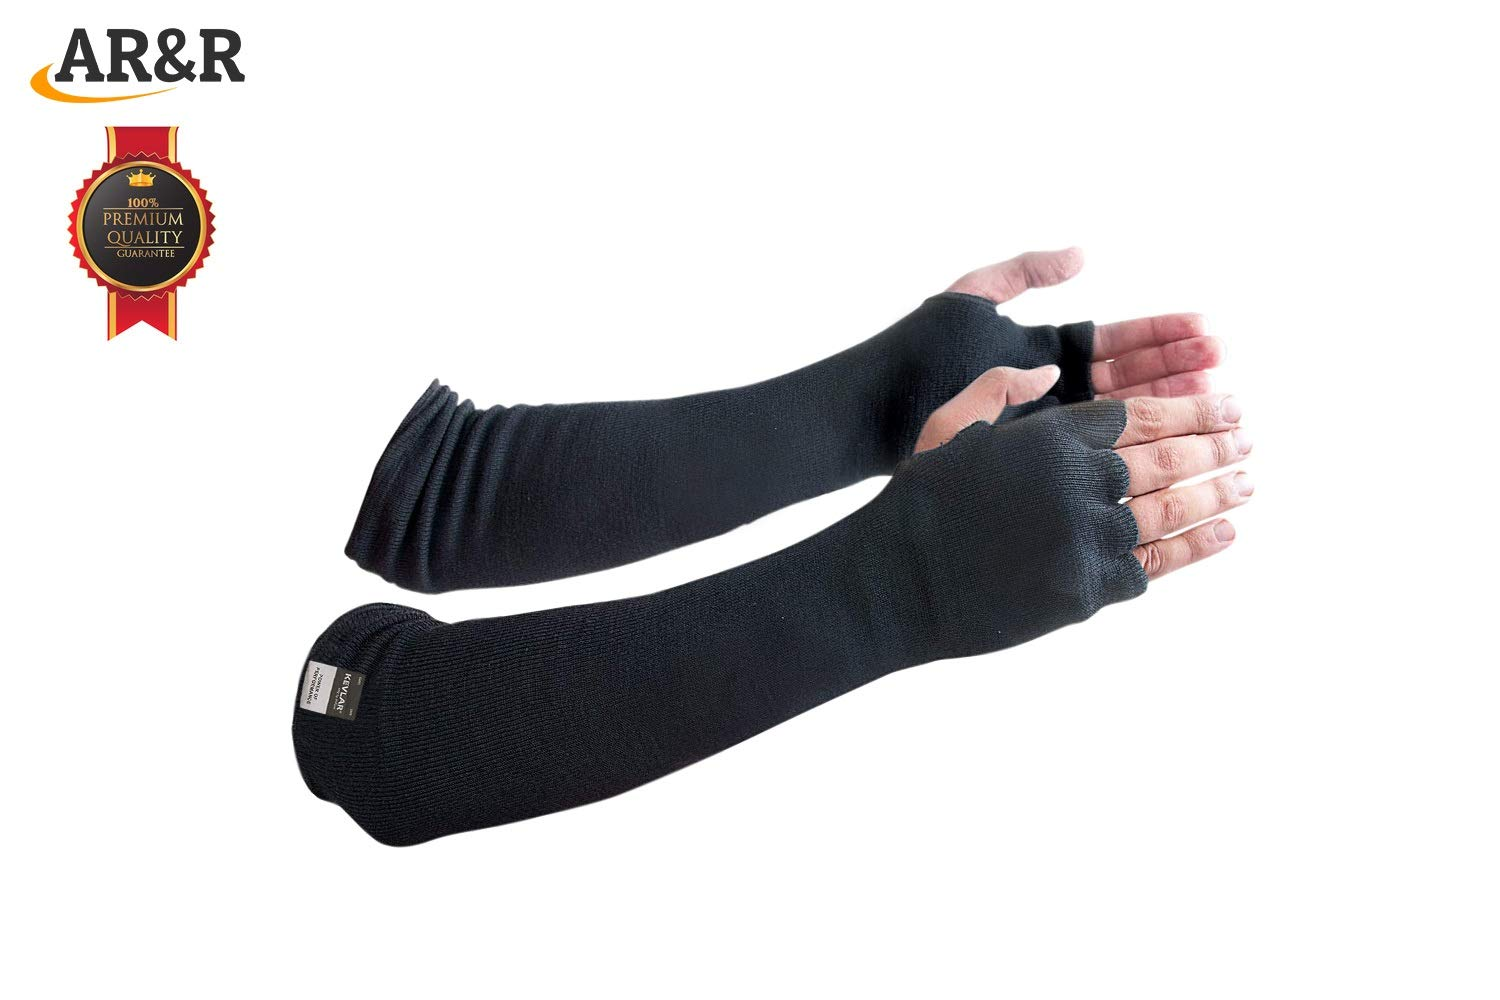 Kevlar Arm Sleeves,Cut/Knife/Heat/Scratch Resistant 18 Inch Long Elbow Cover Level 4 EN Tested Glass/Metal Cutting,Grinding,Welding UV Protection Lightweight/Washable/Flexible Pair (Finger Opening)